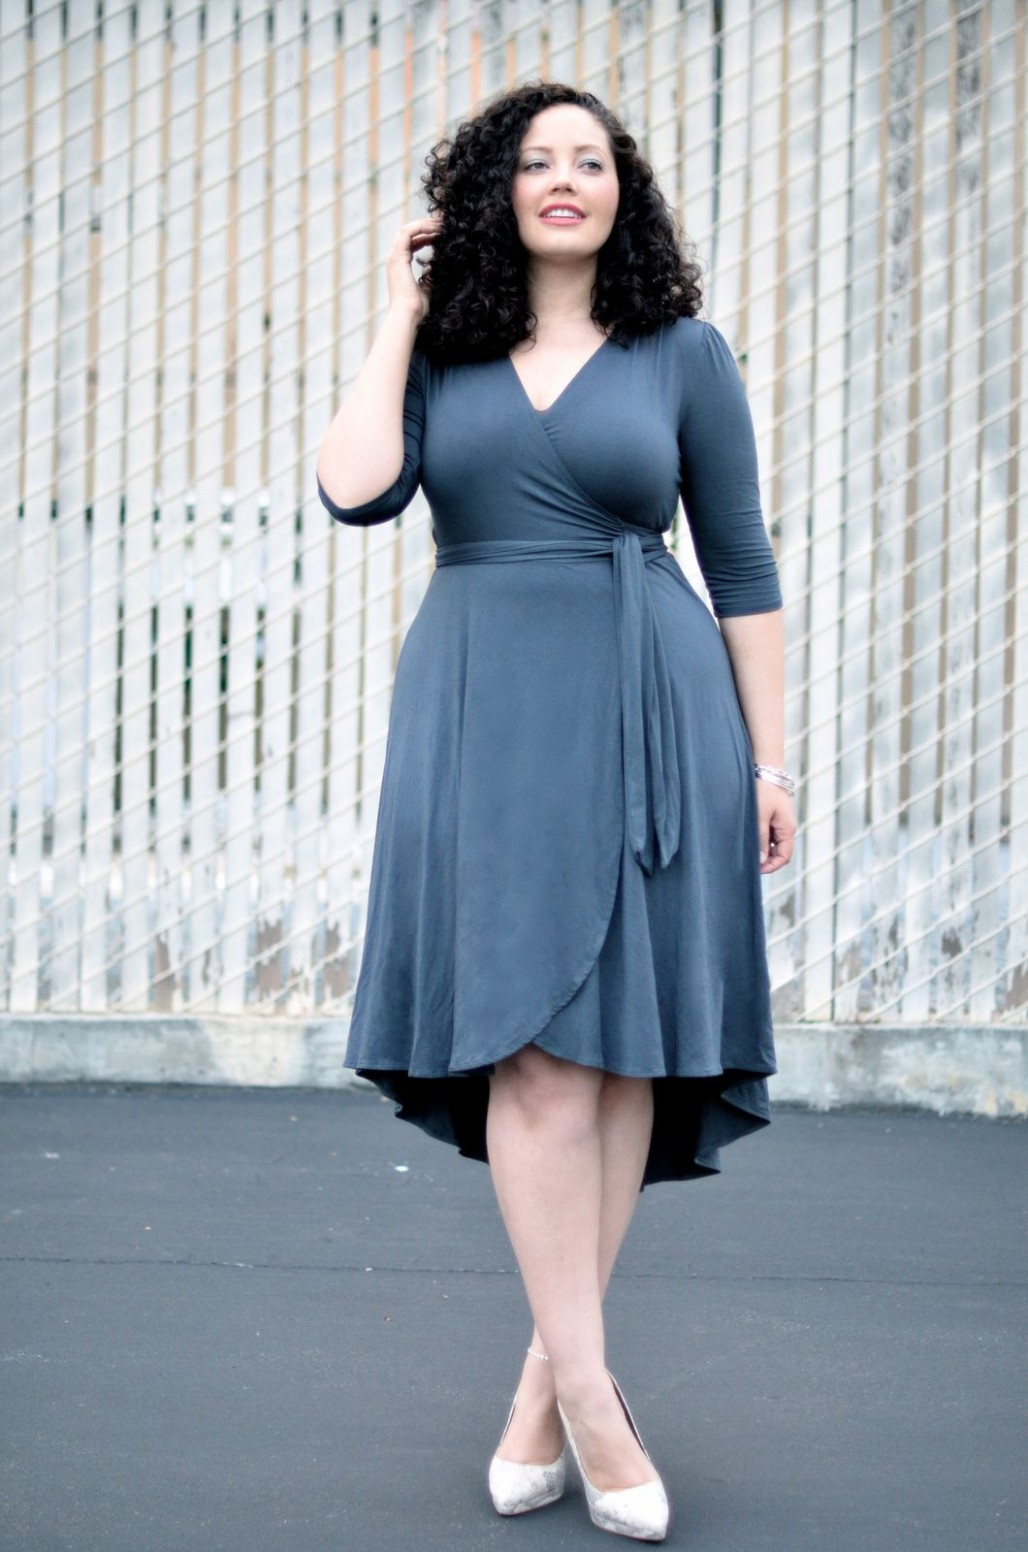 wrap dress curvy girl outfits, short girl fashion, curvy girl kleider für dicke